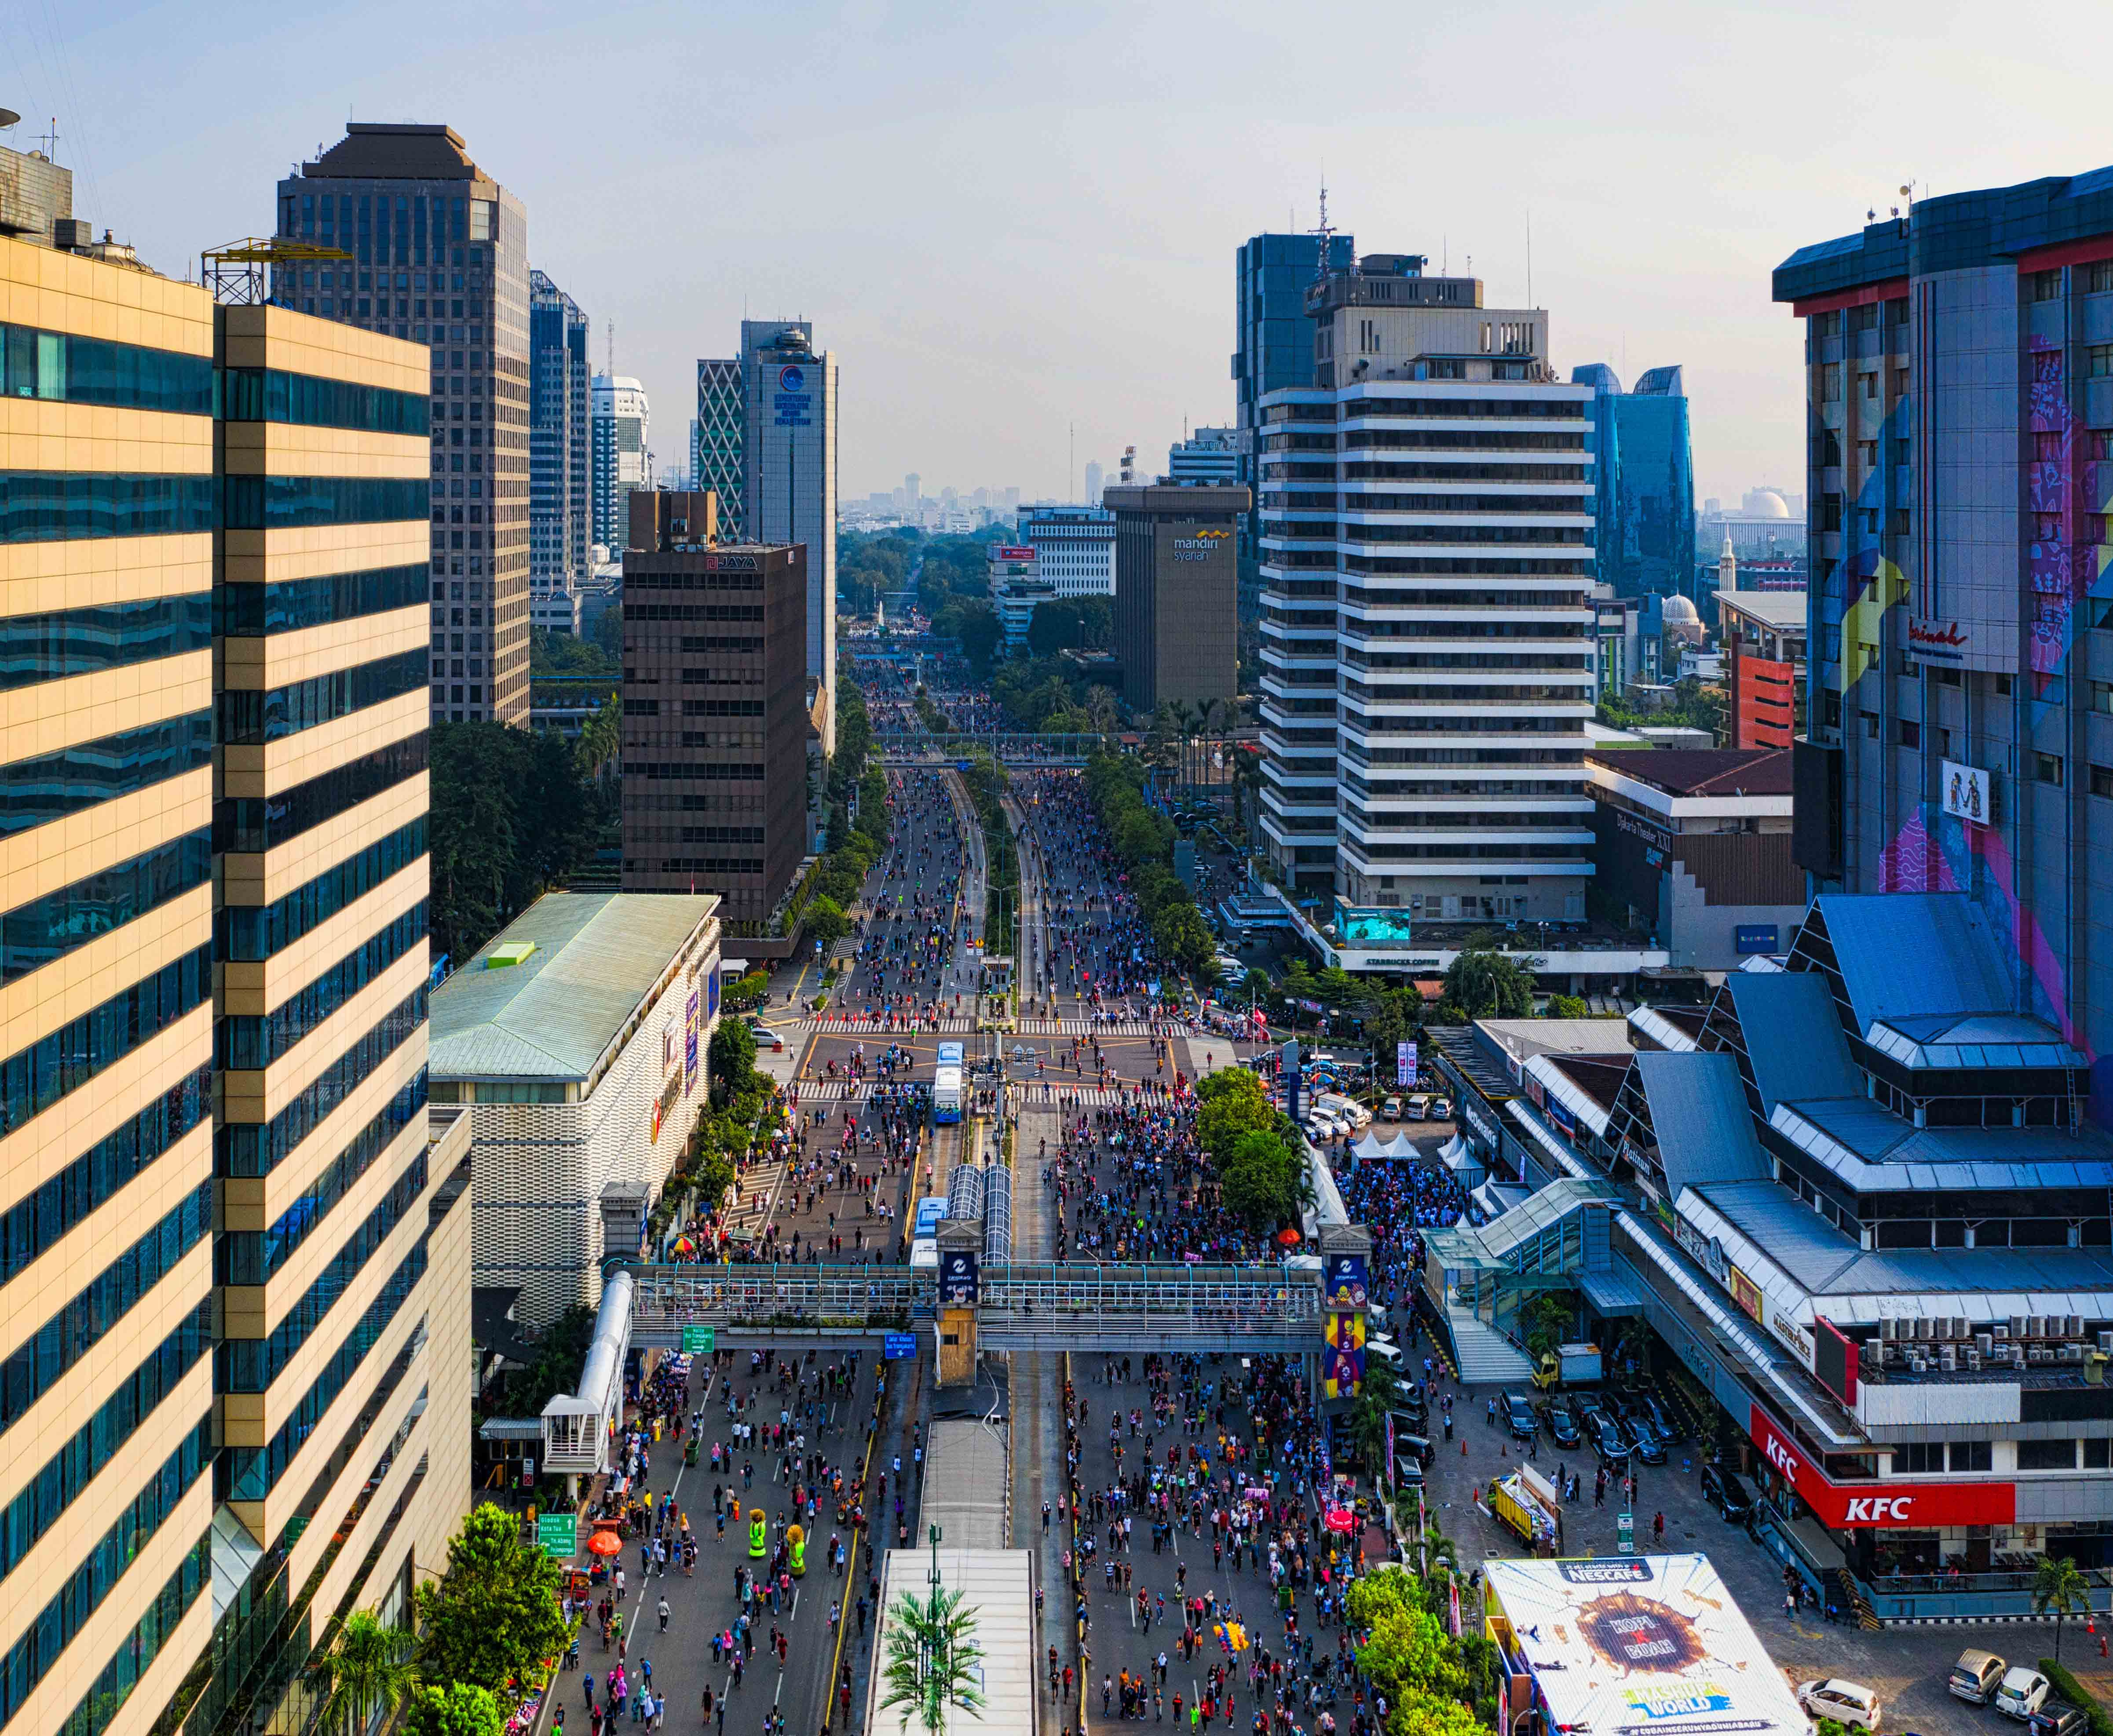 Crowded street in Jakarta, Indonesia